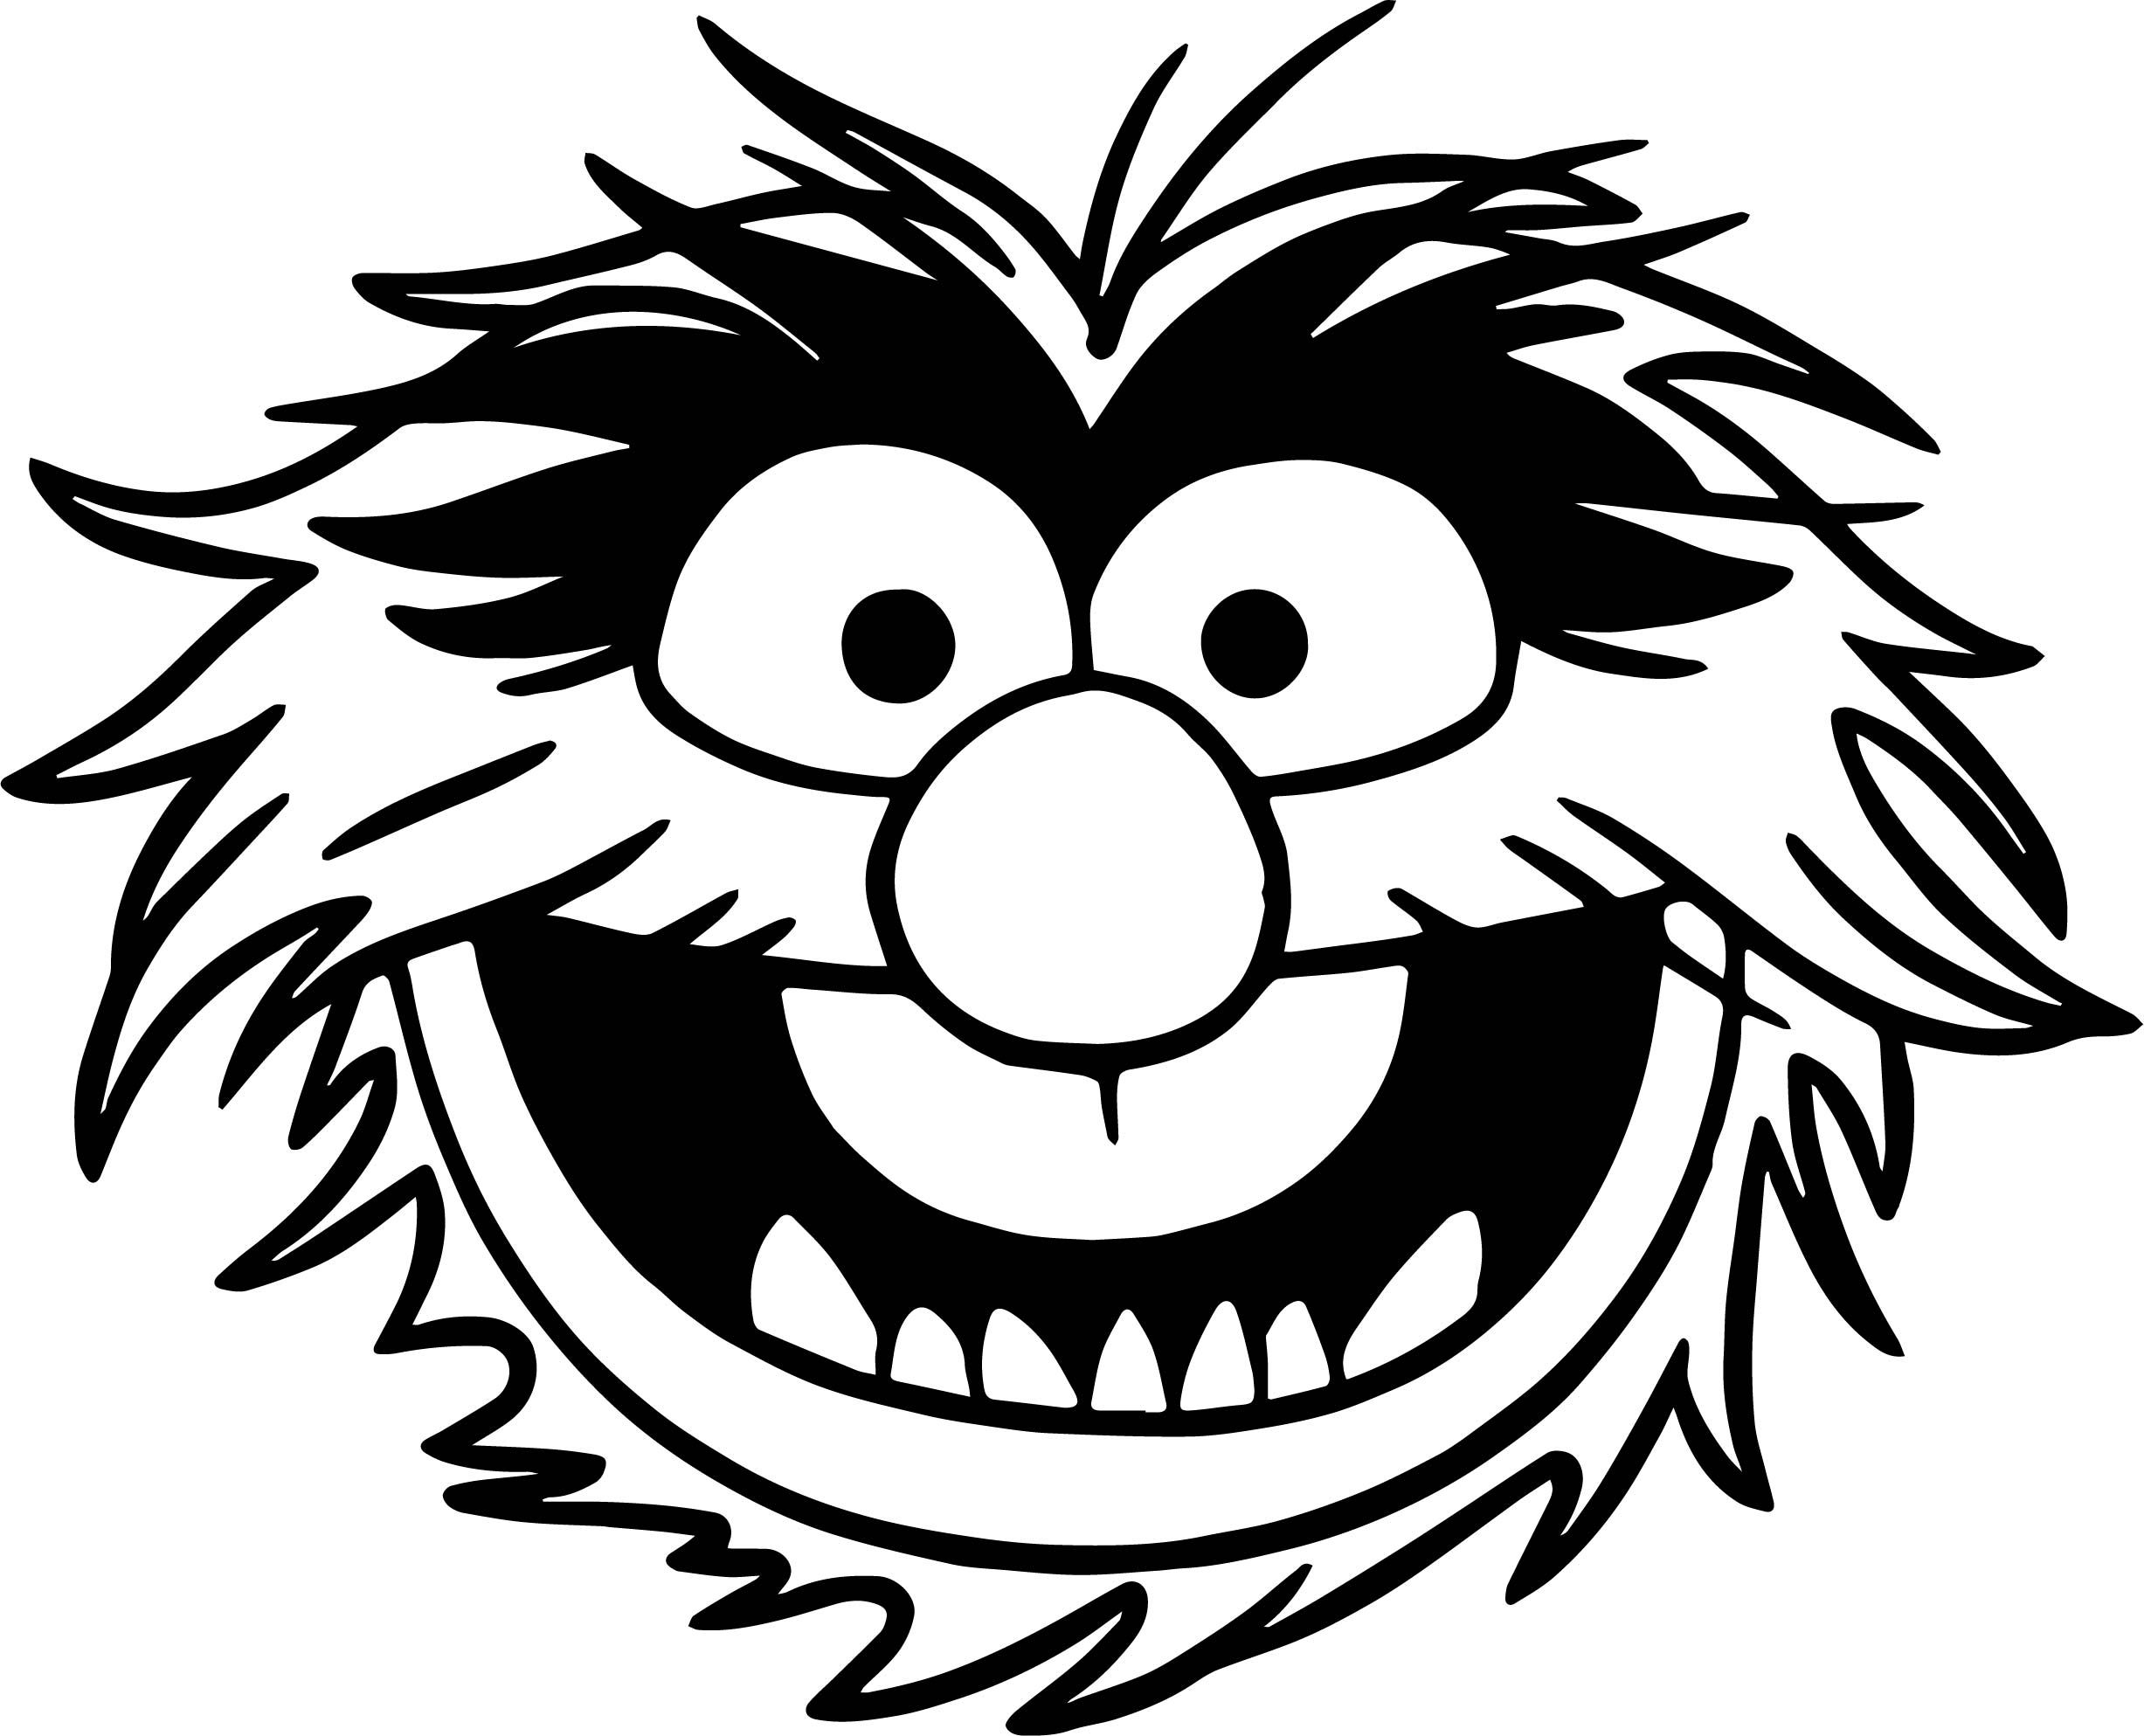 46+ Crazy frog coloring pages information